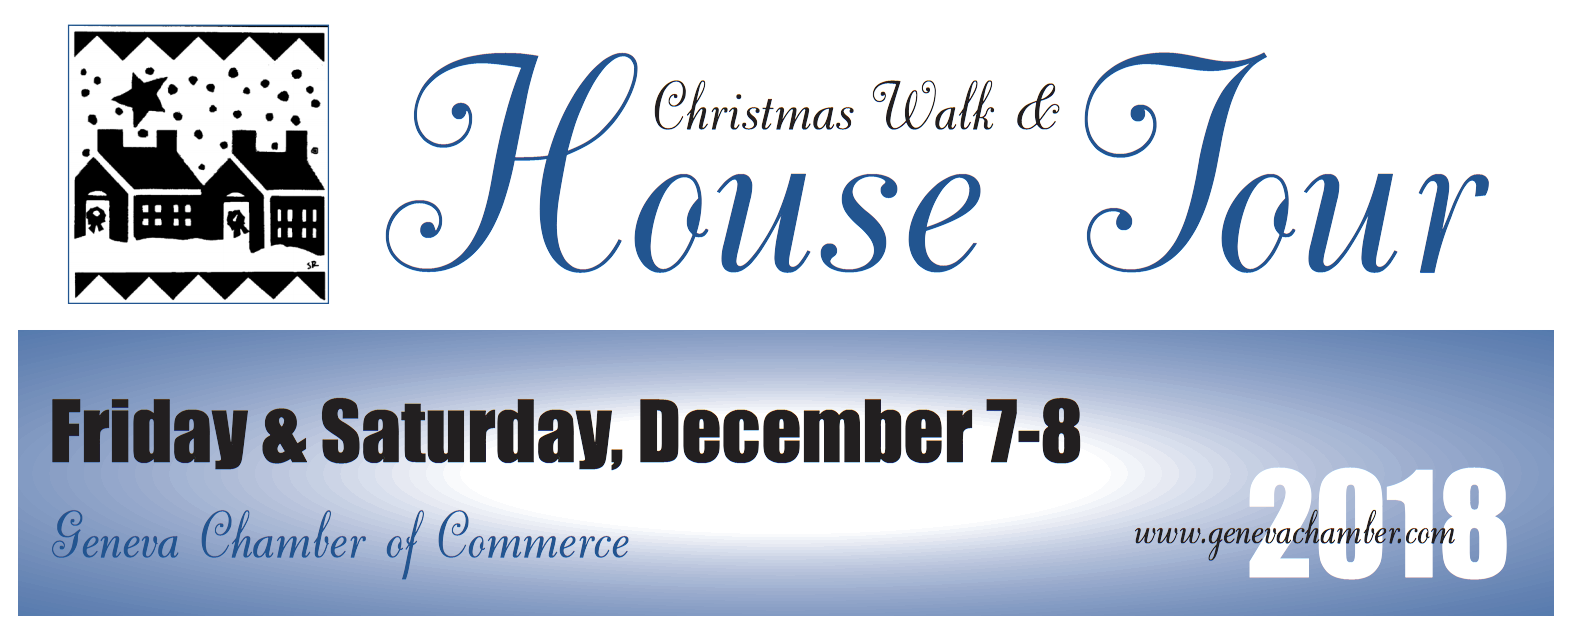 Geneva Chamber Holiday House Tour